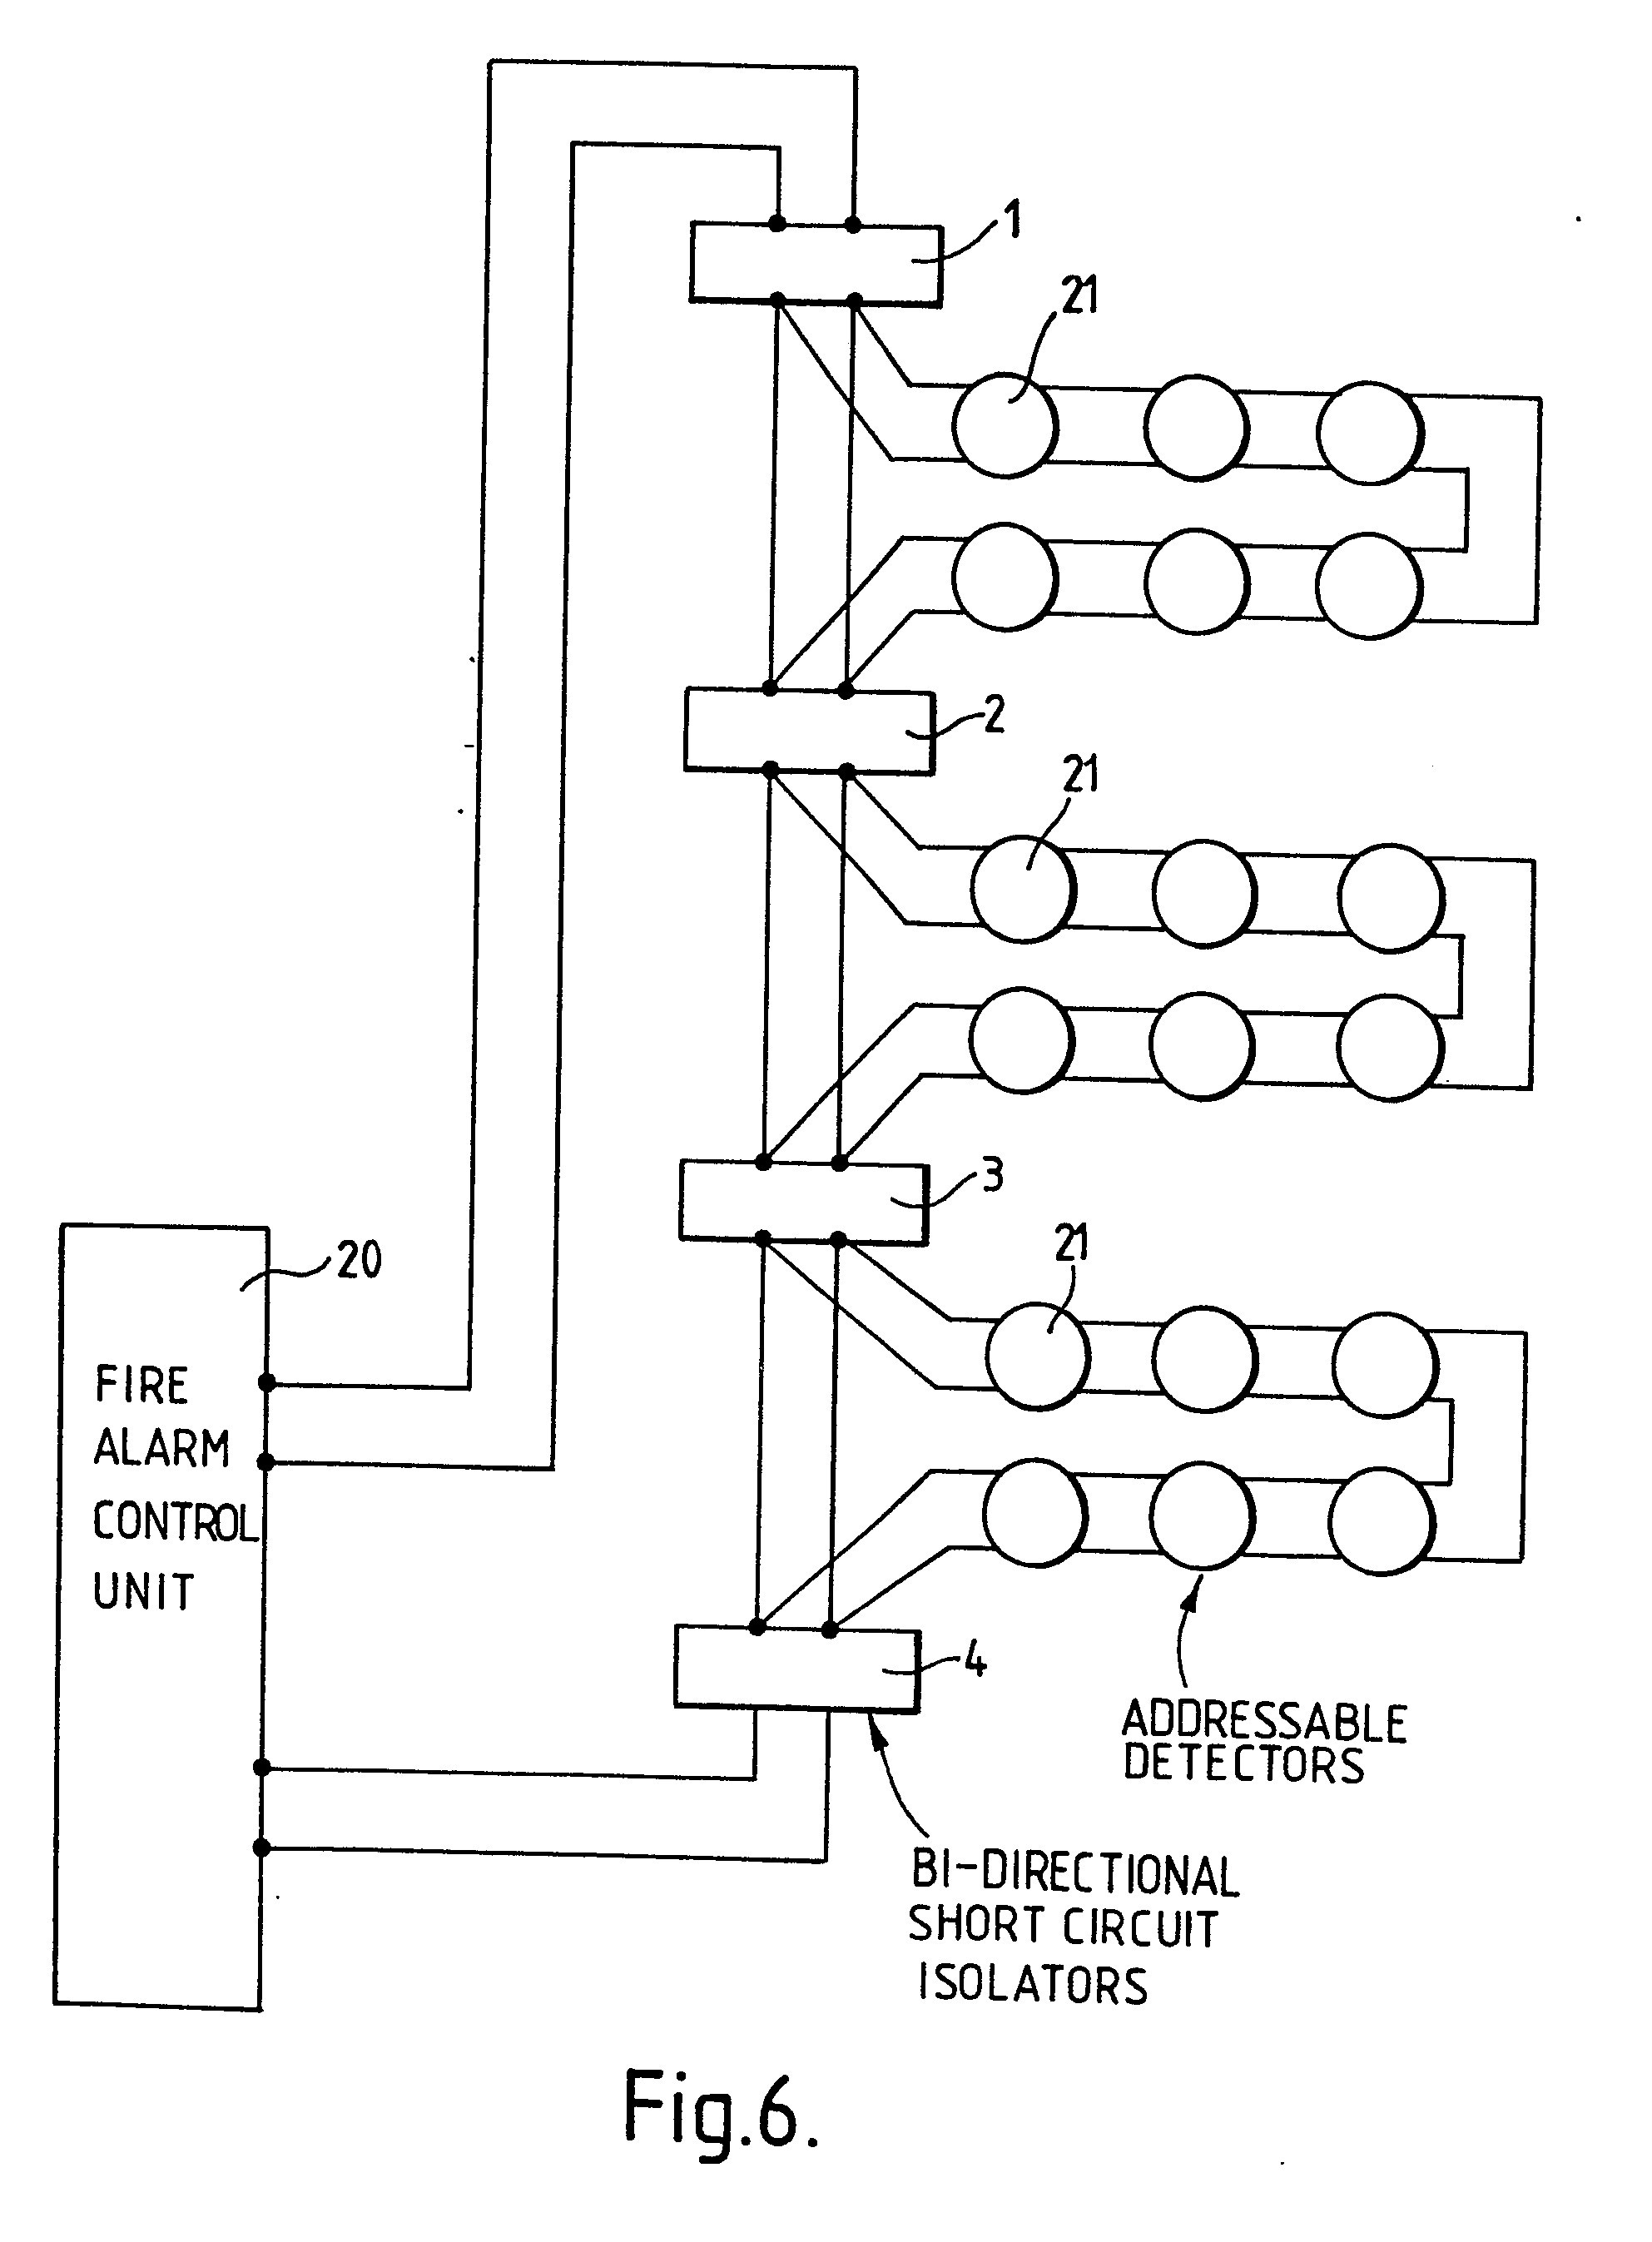 Wiring Also Fire Alarm Wiring Diagram On Home Smoke Detectors Wiring